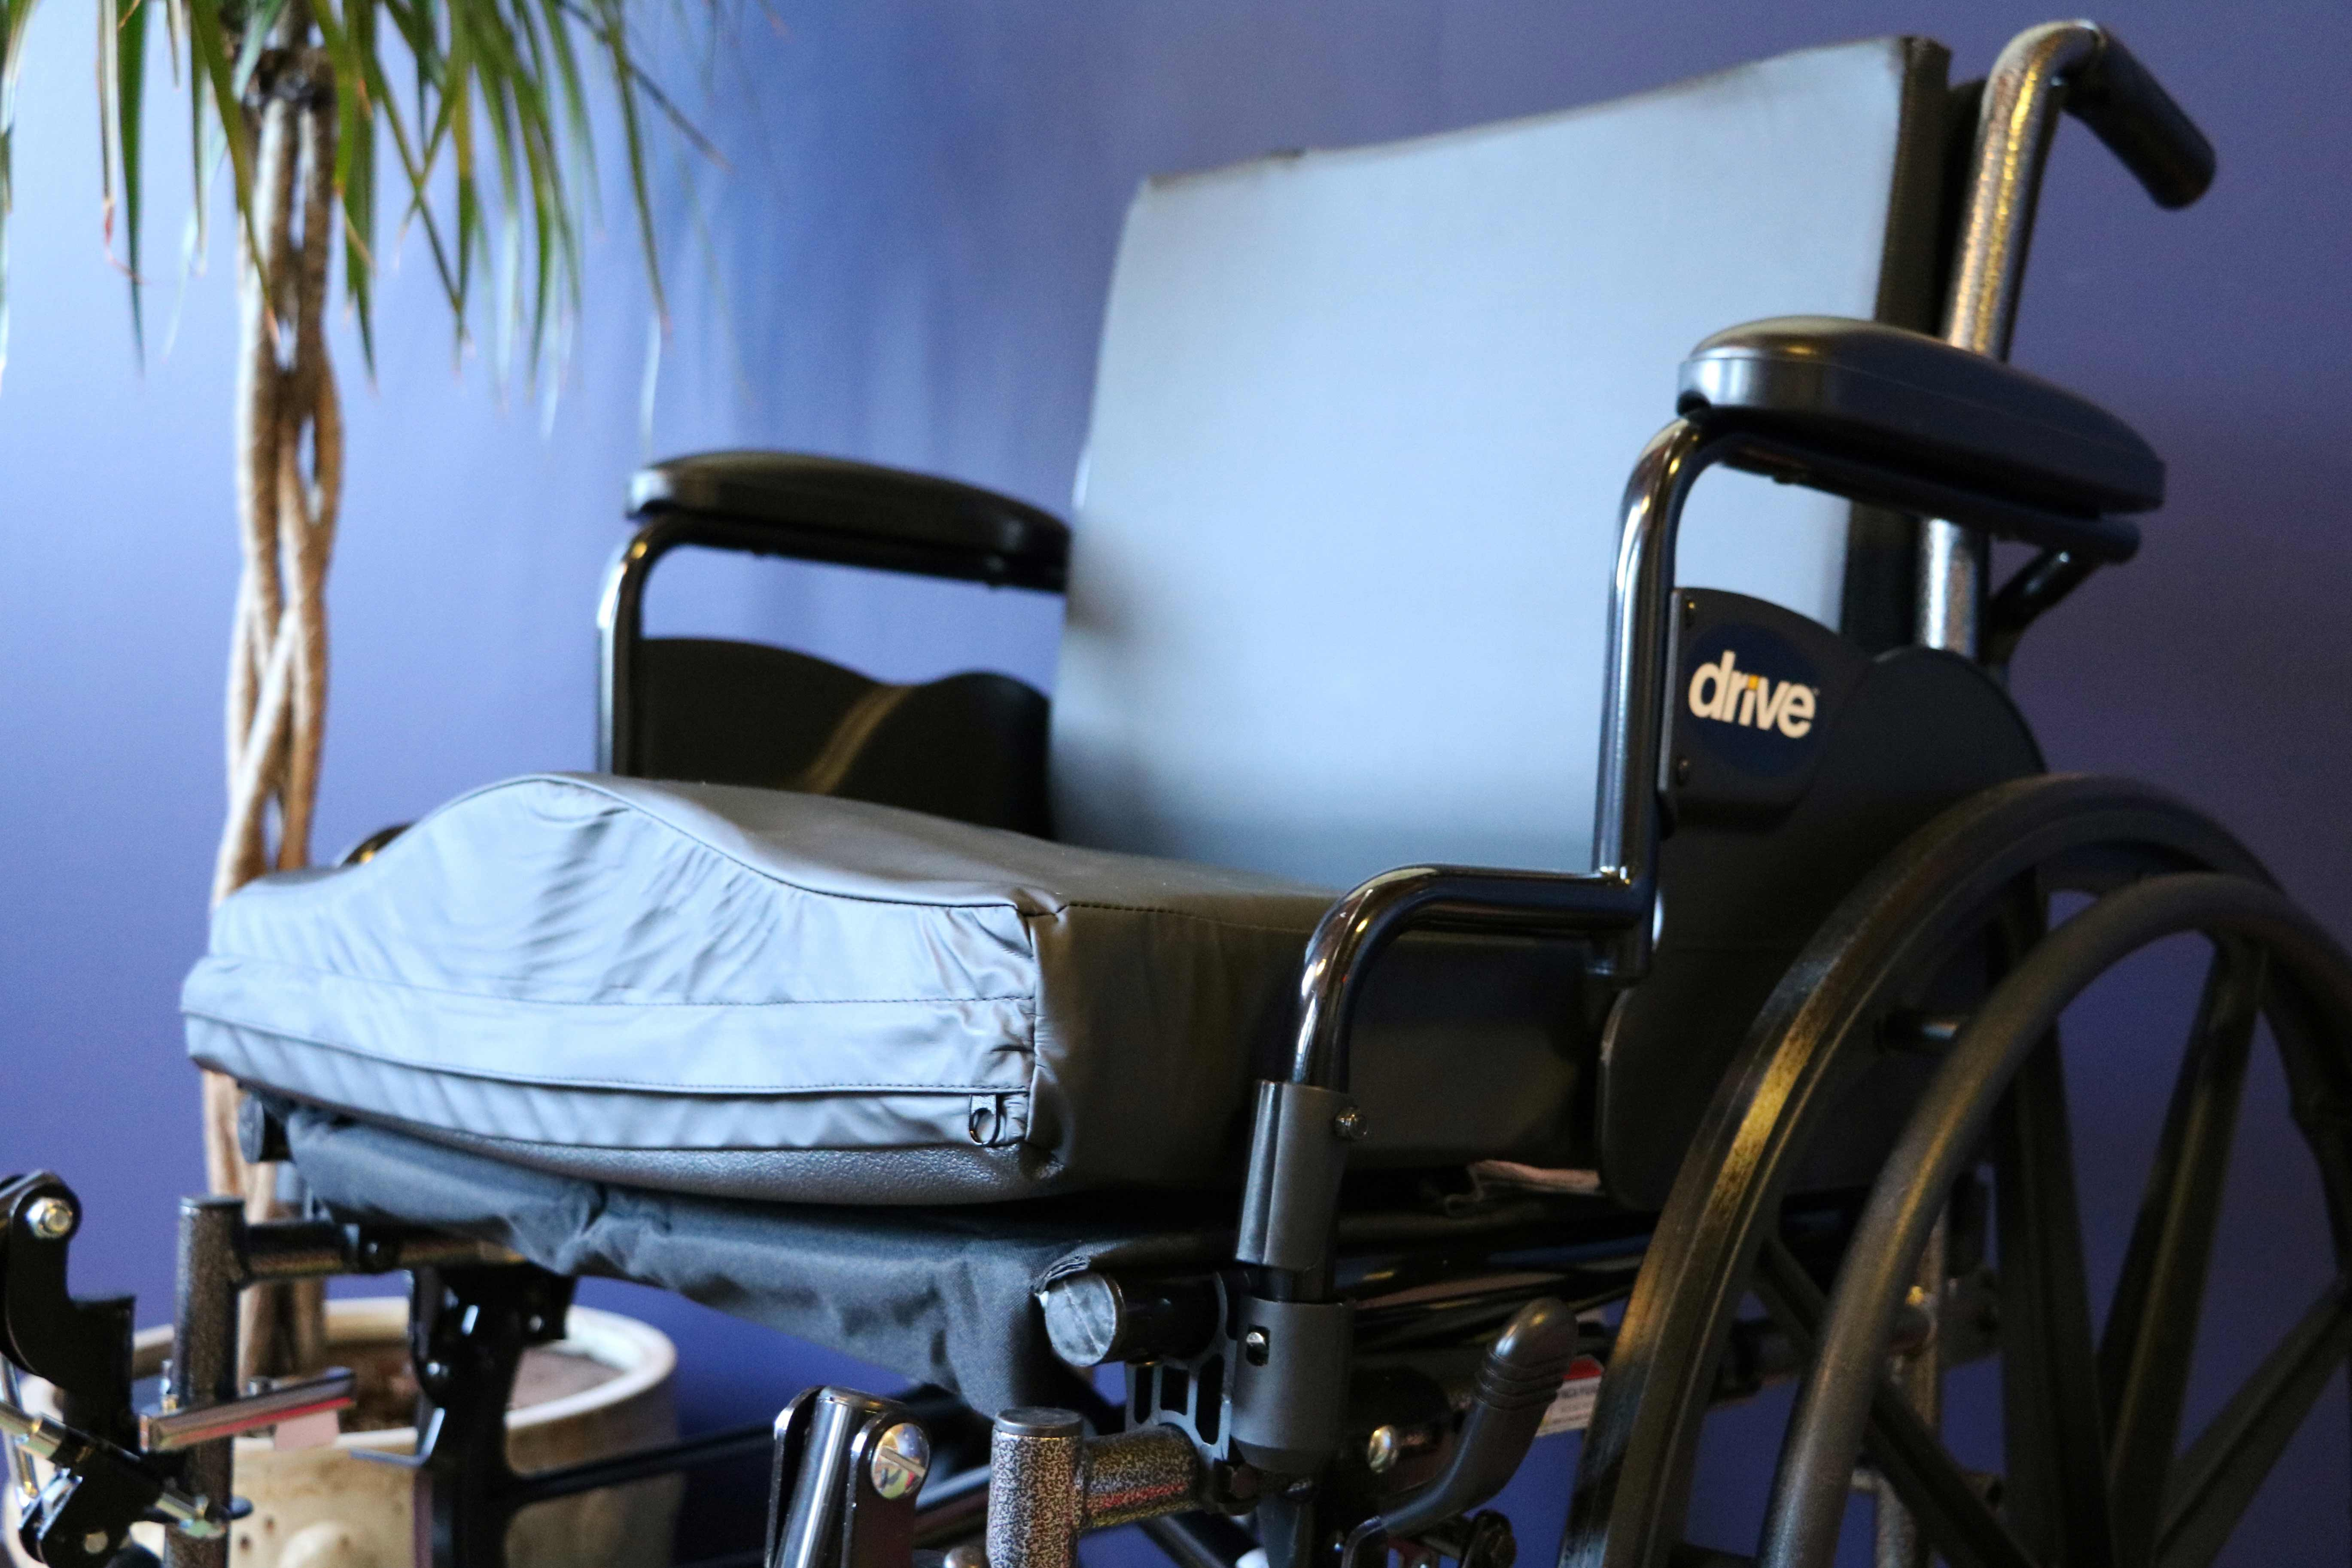 Wheelchair with seat cushion